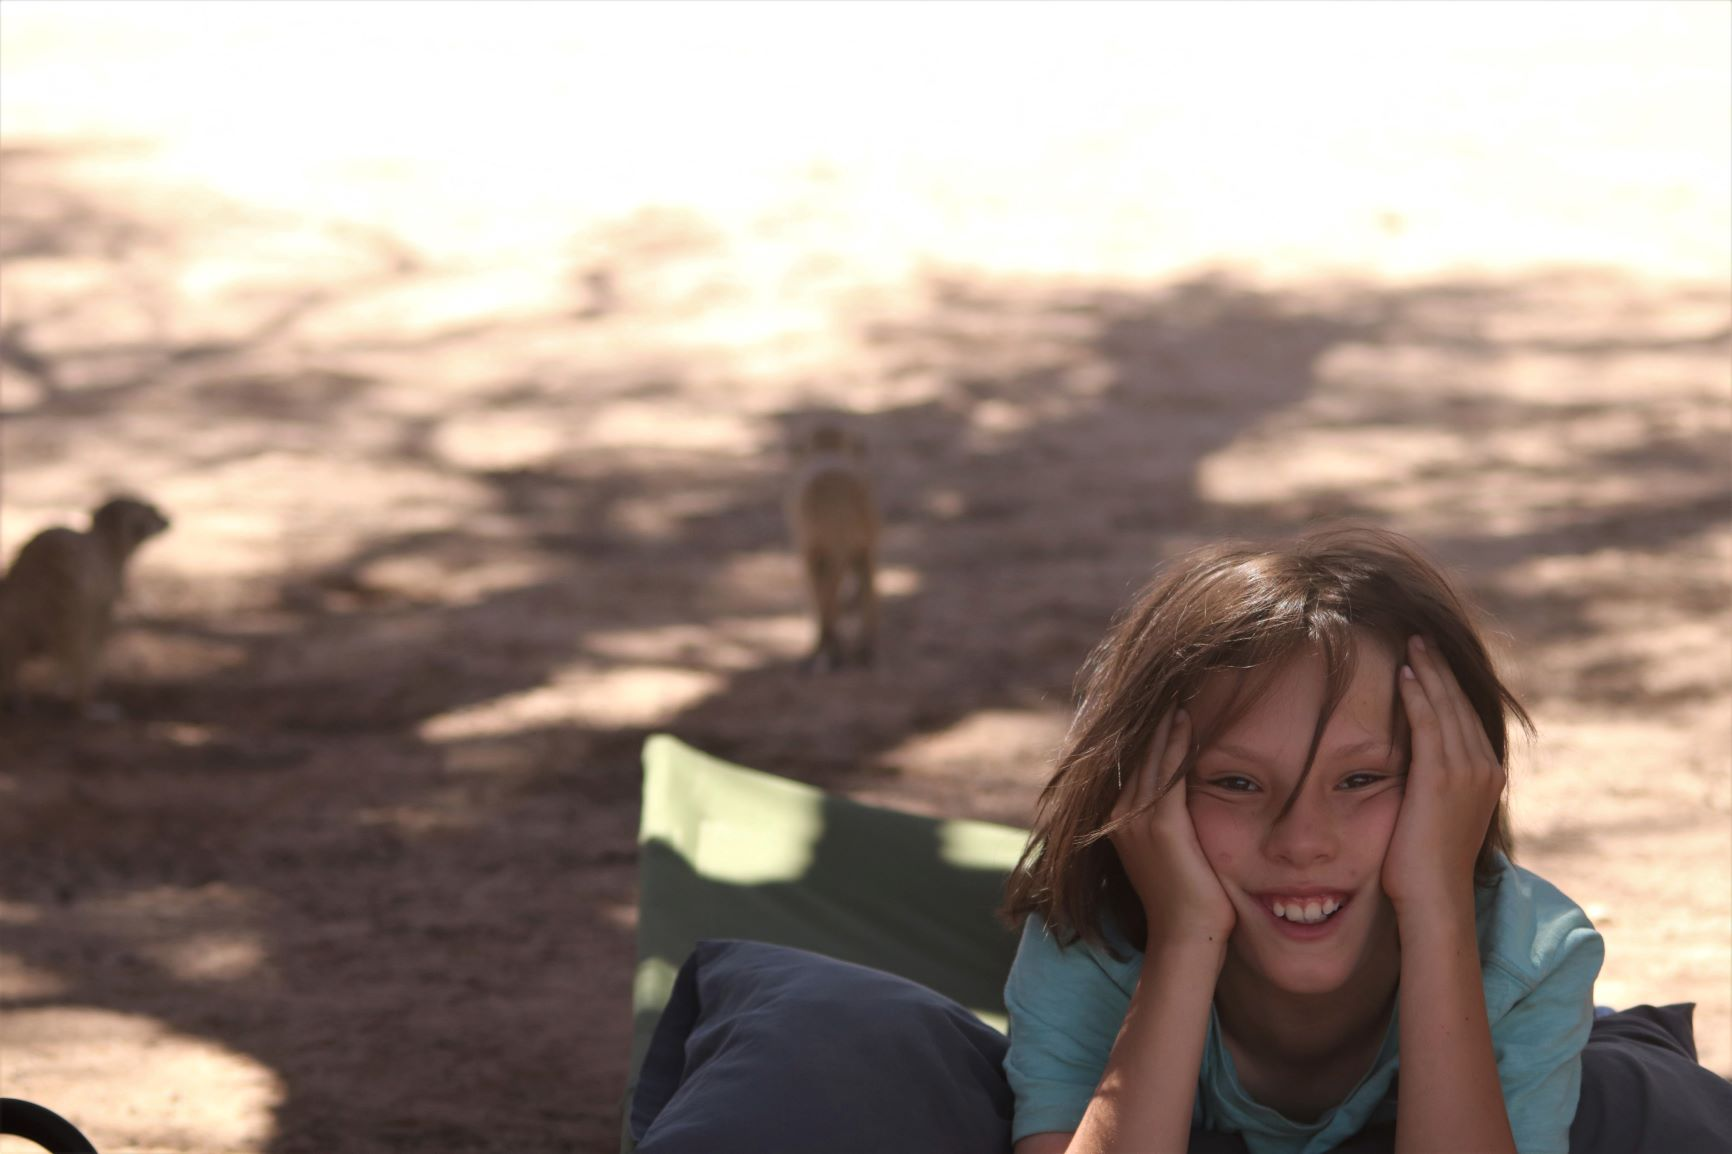 Camping in the Kgalagadi Transfrontier Park